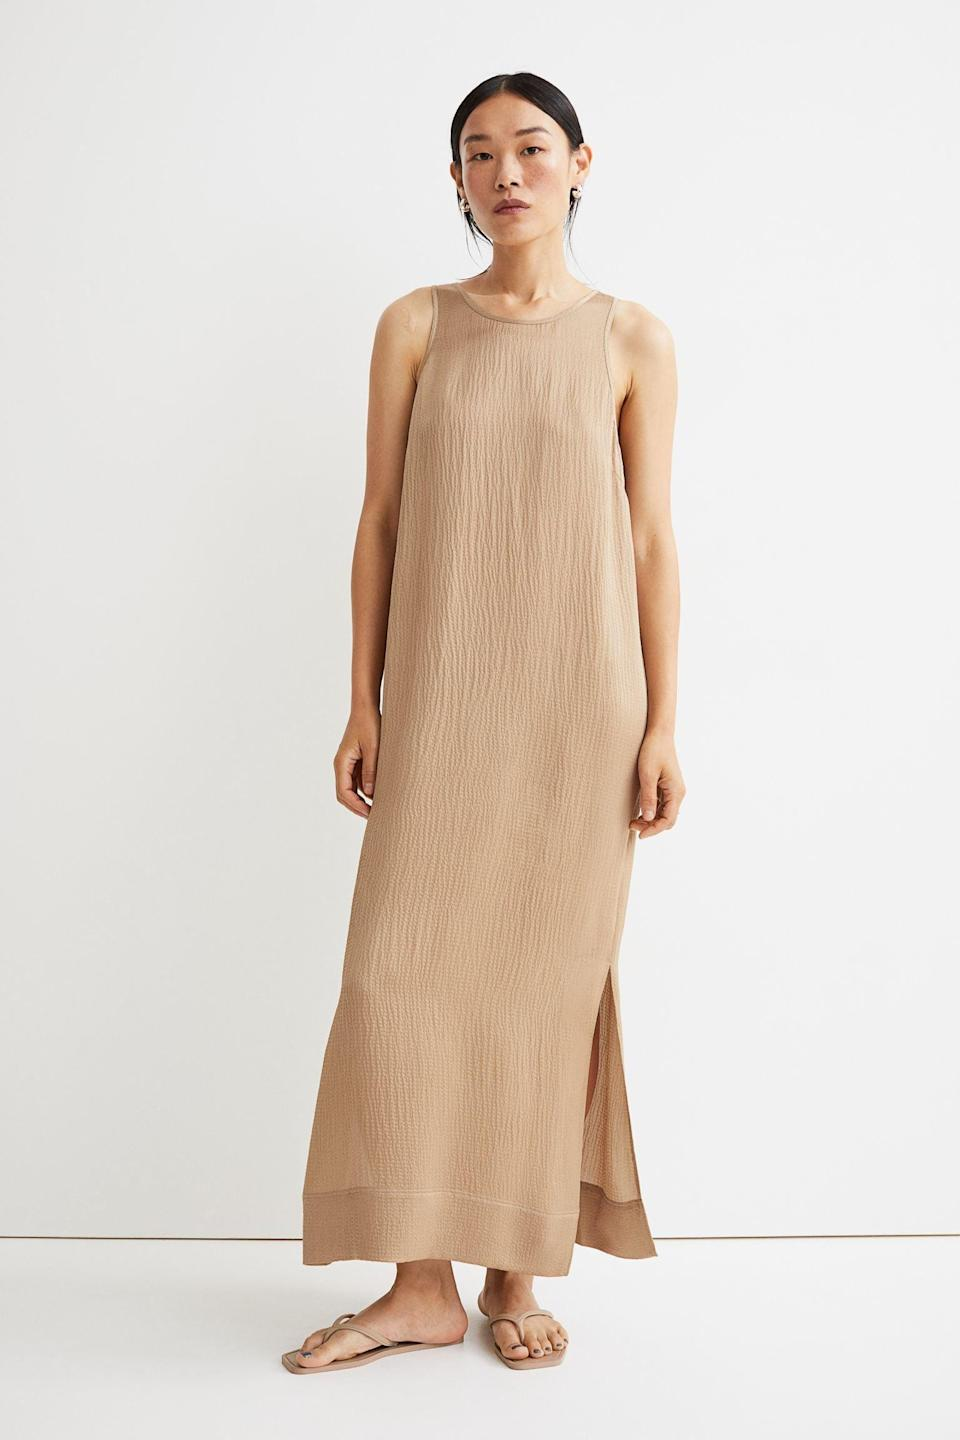 <p>The fabric of this <span>Crêped Silk-blend Dress</span> ($119) makes it look expensive and chic. The ensemble has an understated elegance that makes it a winner in our book.</p>